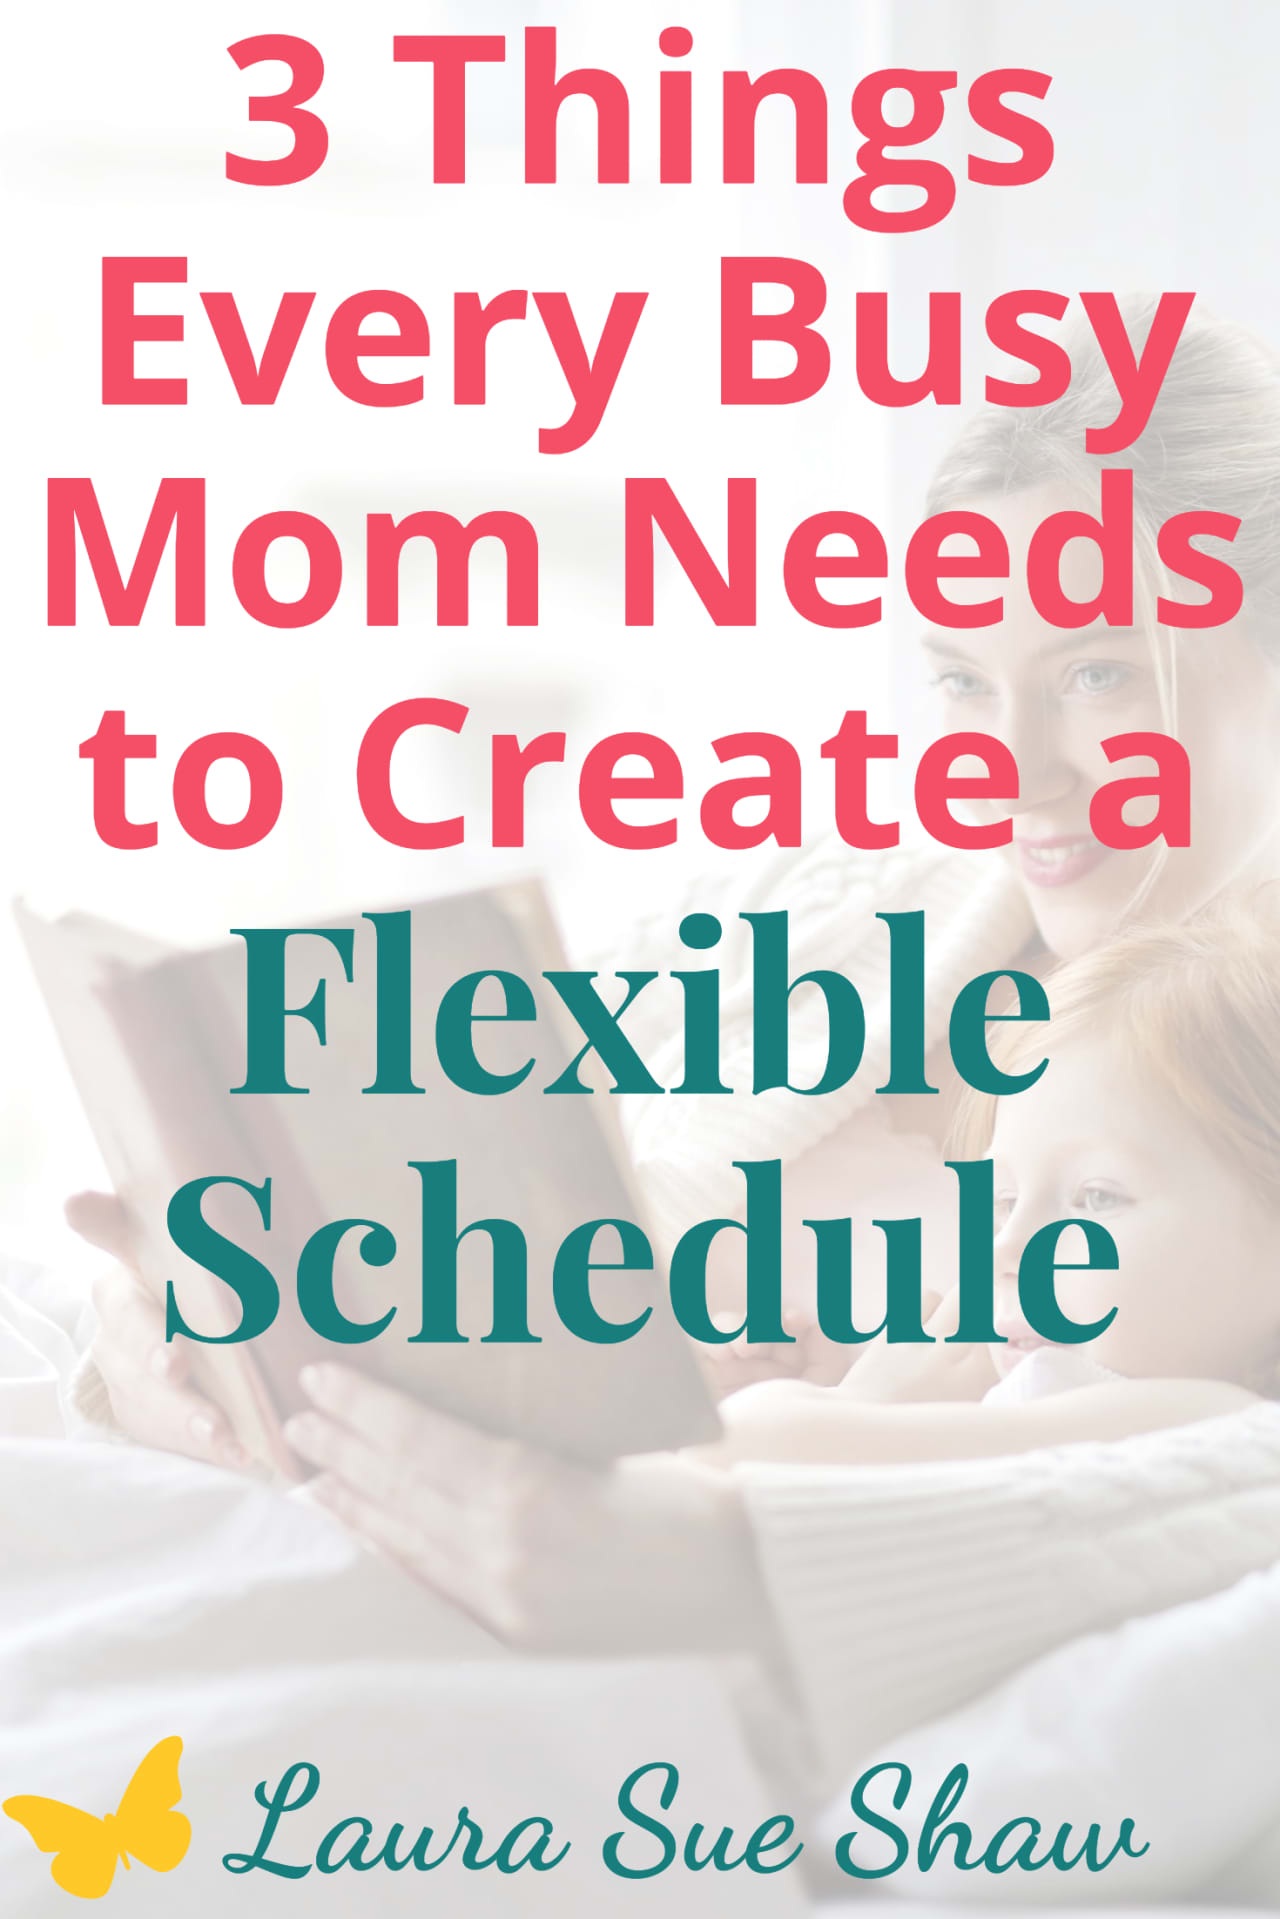 3 Things Every Busy Mom Needs to Create a Flexible Schedule